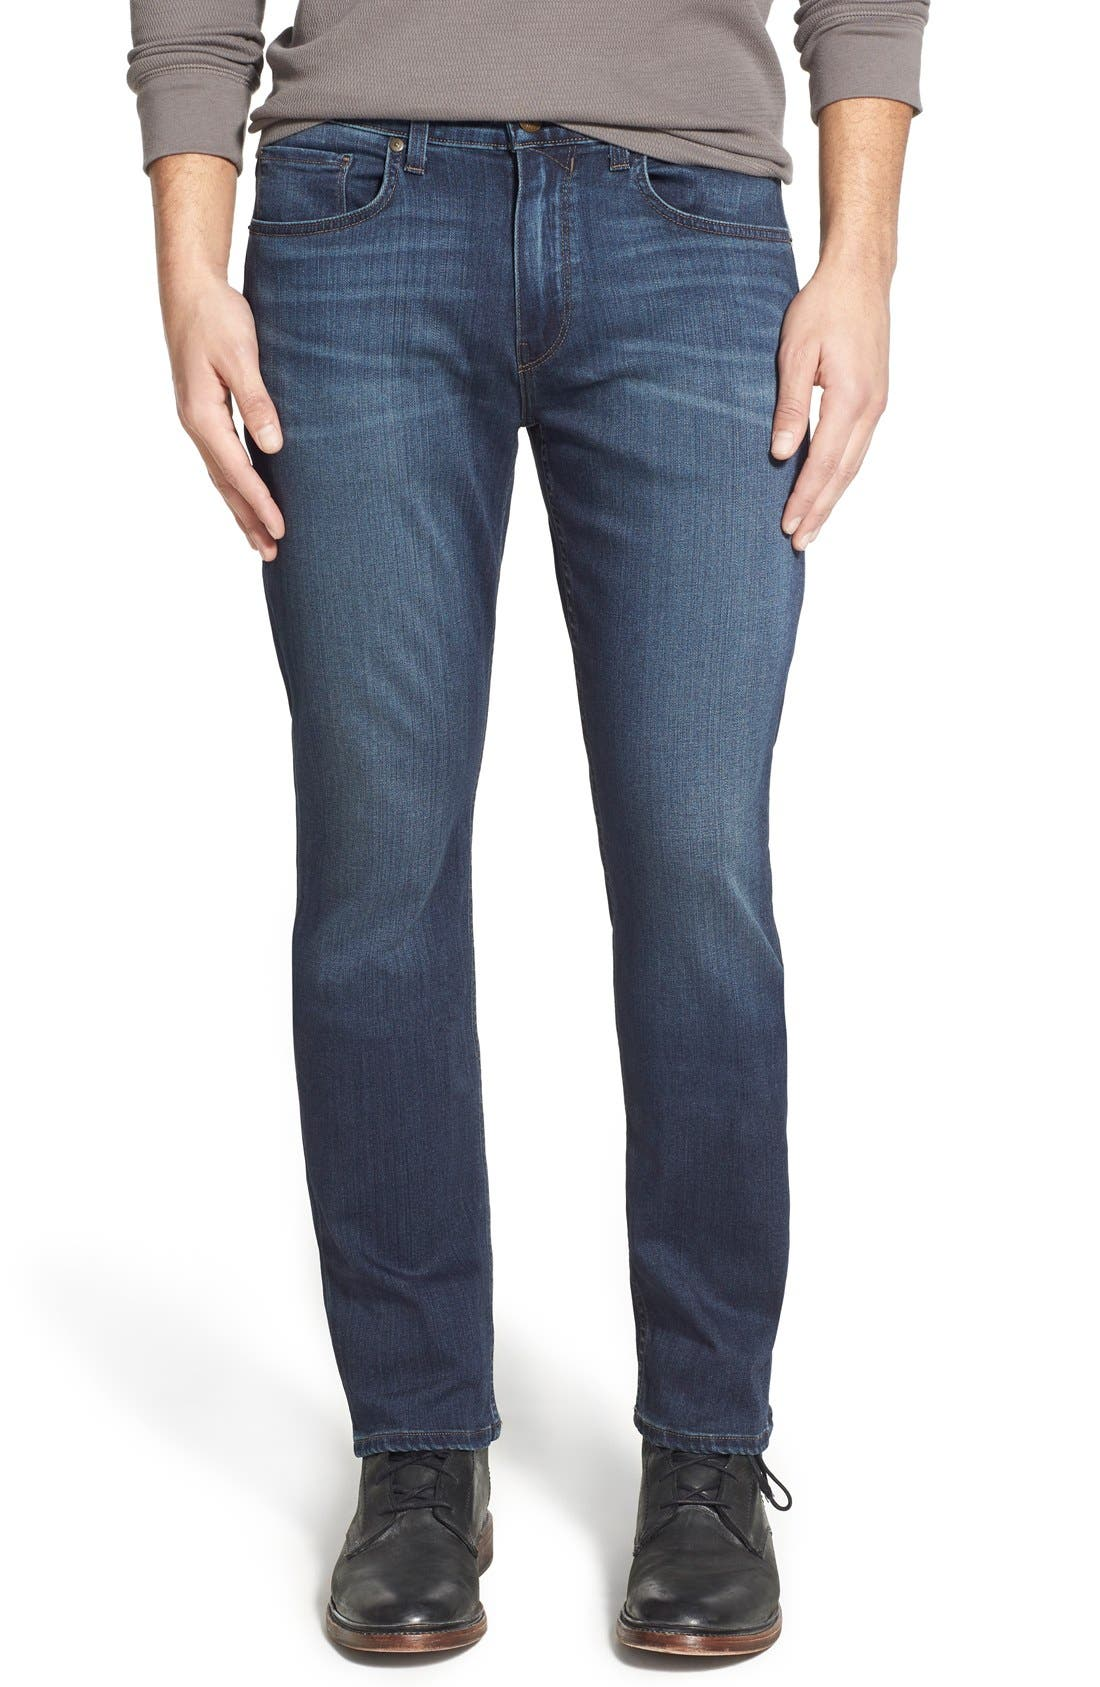 PAIGE, 'Federal' Slim Straight Leg Jeans, Main thumbnail 1, color, BLAKELY